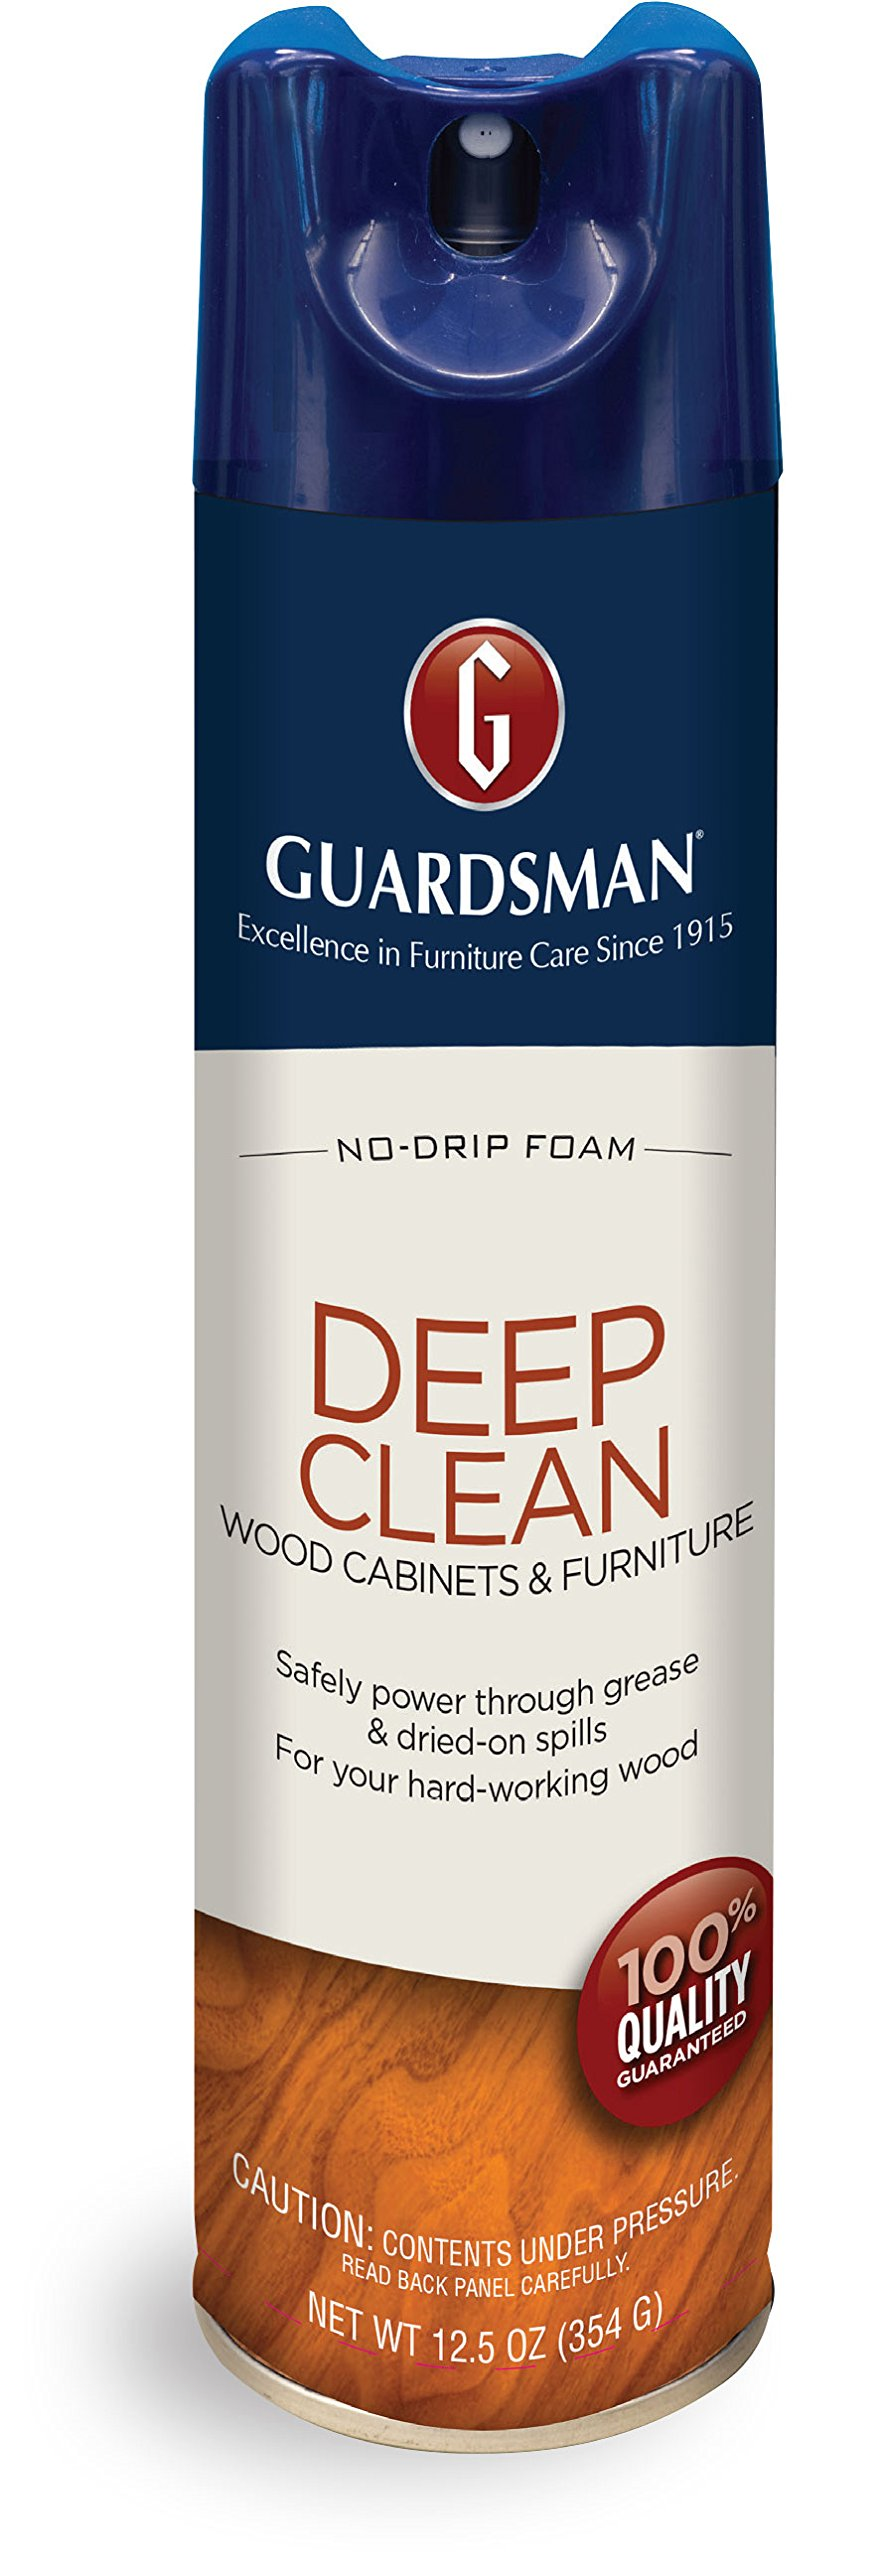 Guardsman Deep Clean - Purifying Wood Cleaner - 12.5 oz Streak Free, Doesn't Attract Dust 460500 by Guardsman (Image #1)